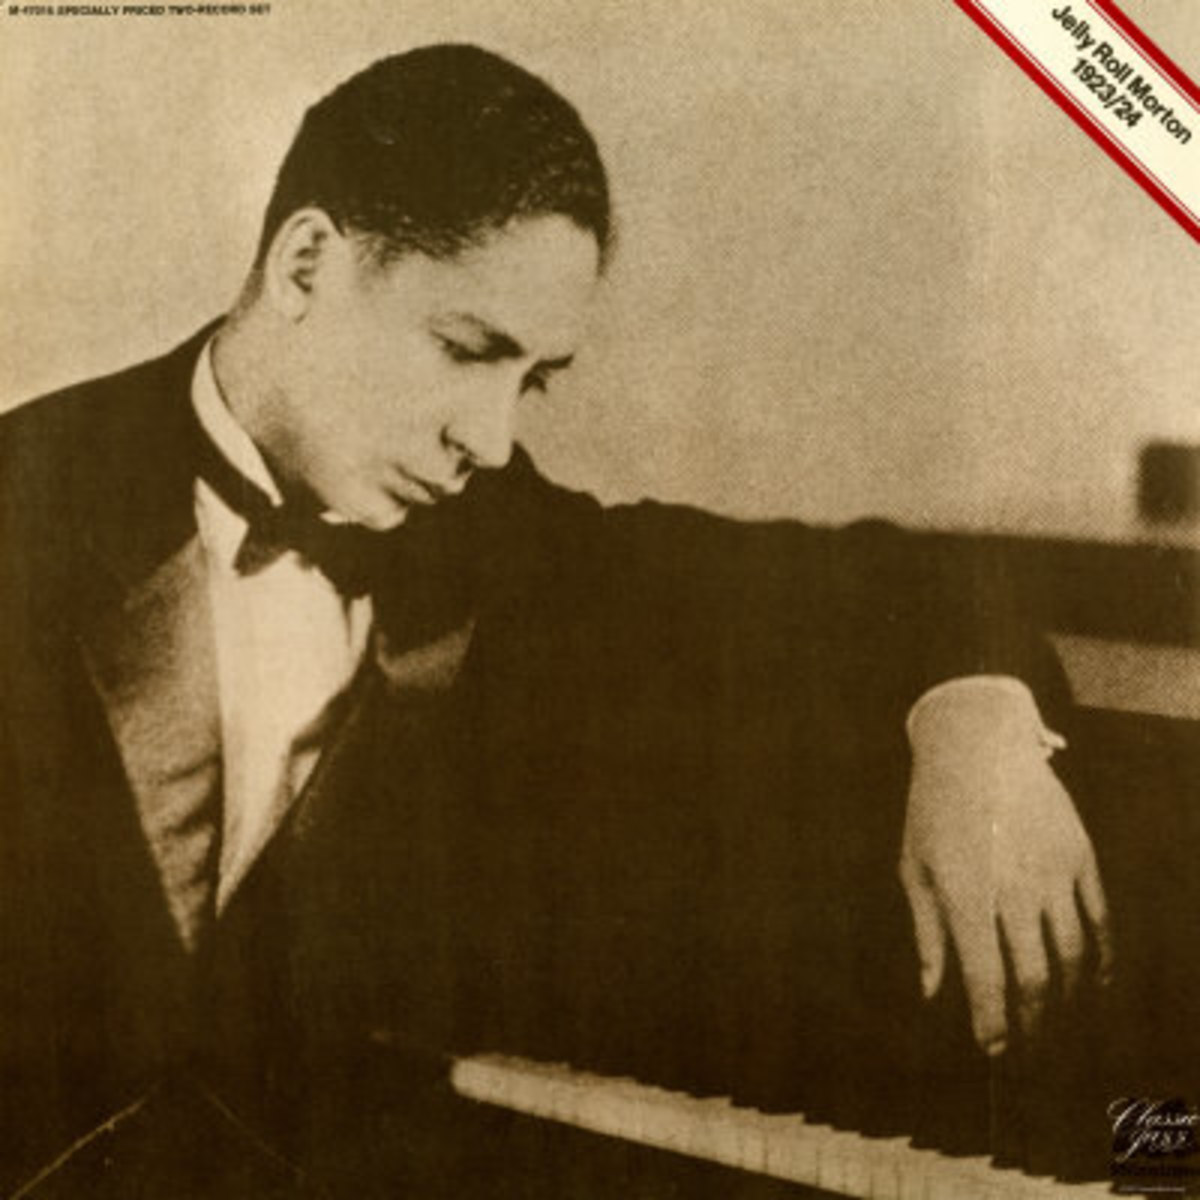 Jelly Roll Morton singlehandedly delivered solo piano performances with such textural variety, contrapuntal melody, and an incredible rhythmic drive and swing. He also combined classical, ragtime, blues and Caribbean influences, and was a composer an